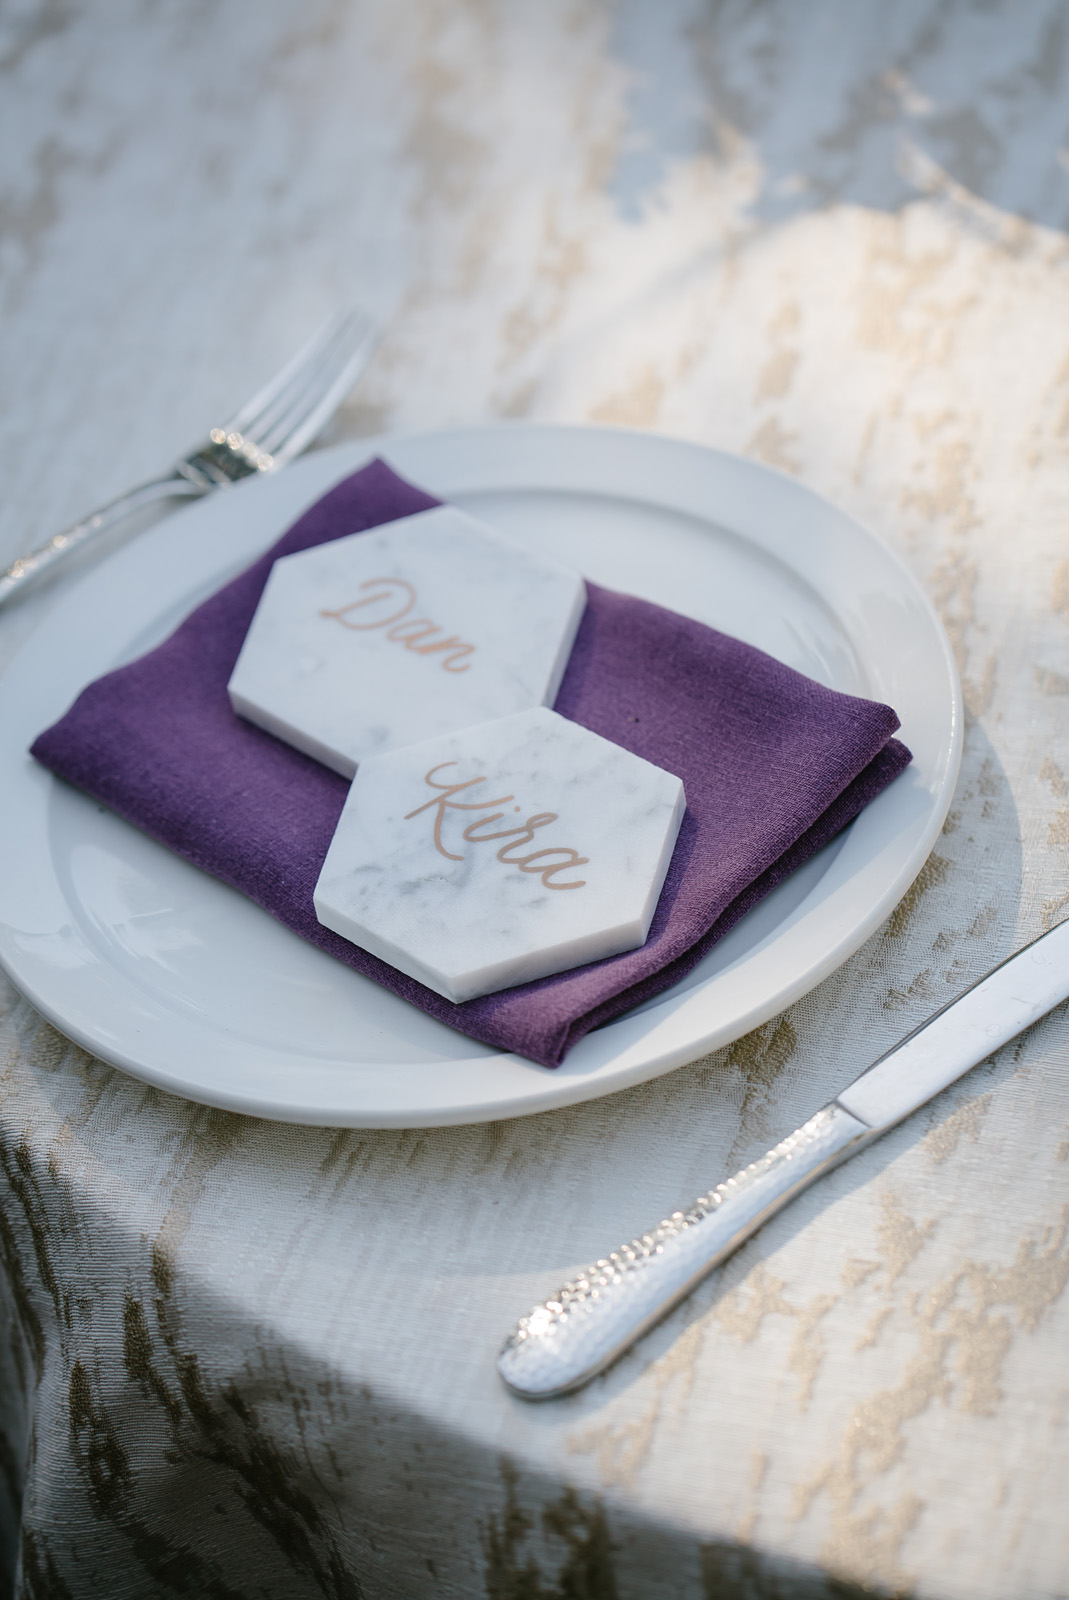 wedding escort cards place cards that don't use paper on marble slabs